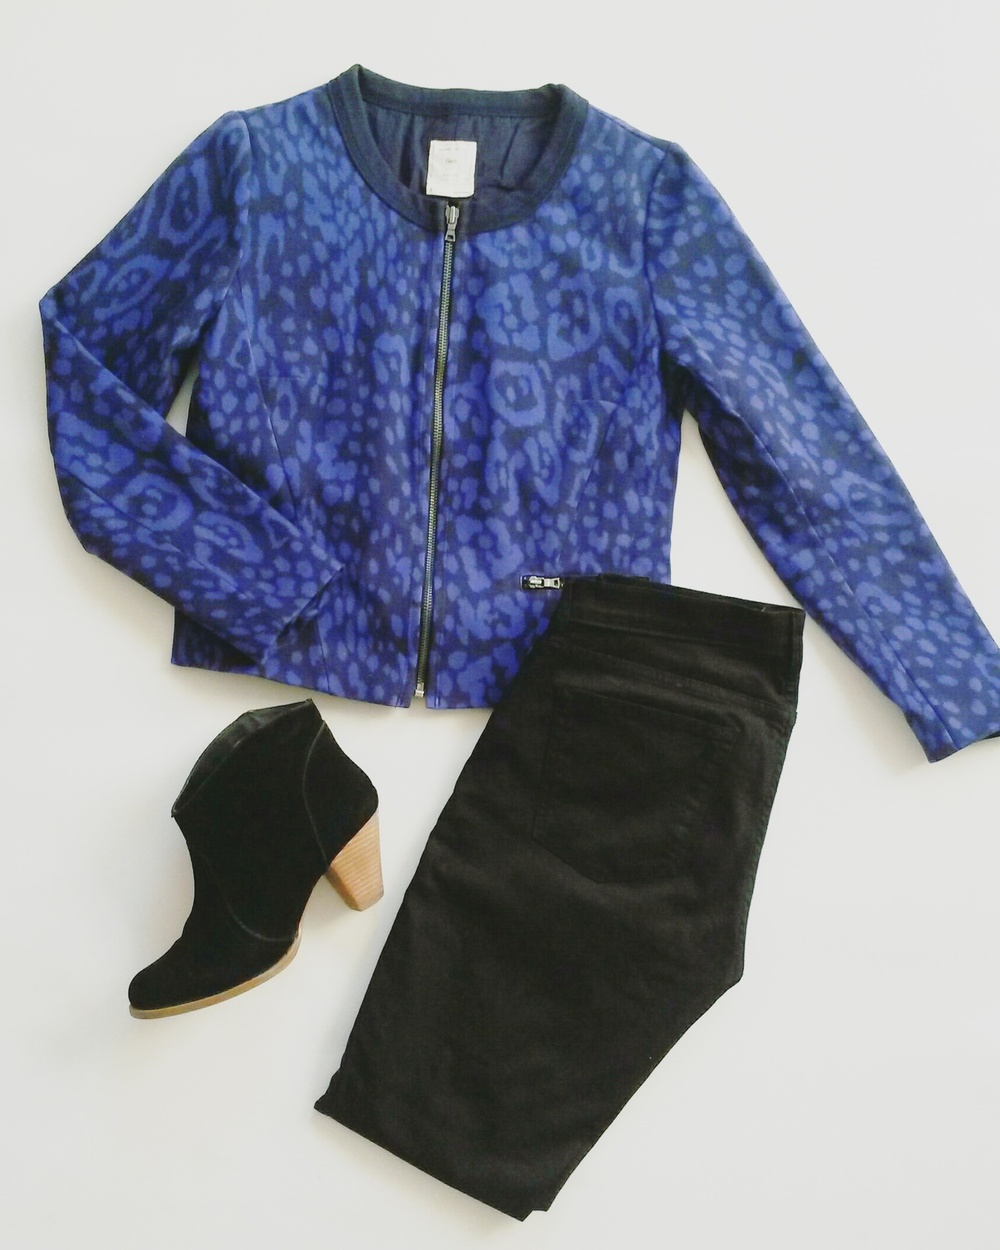 Gap blue leopard jacket, black booties, thrifted; Gap black skinny jeans